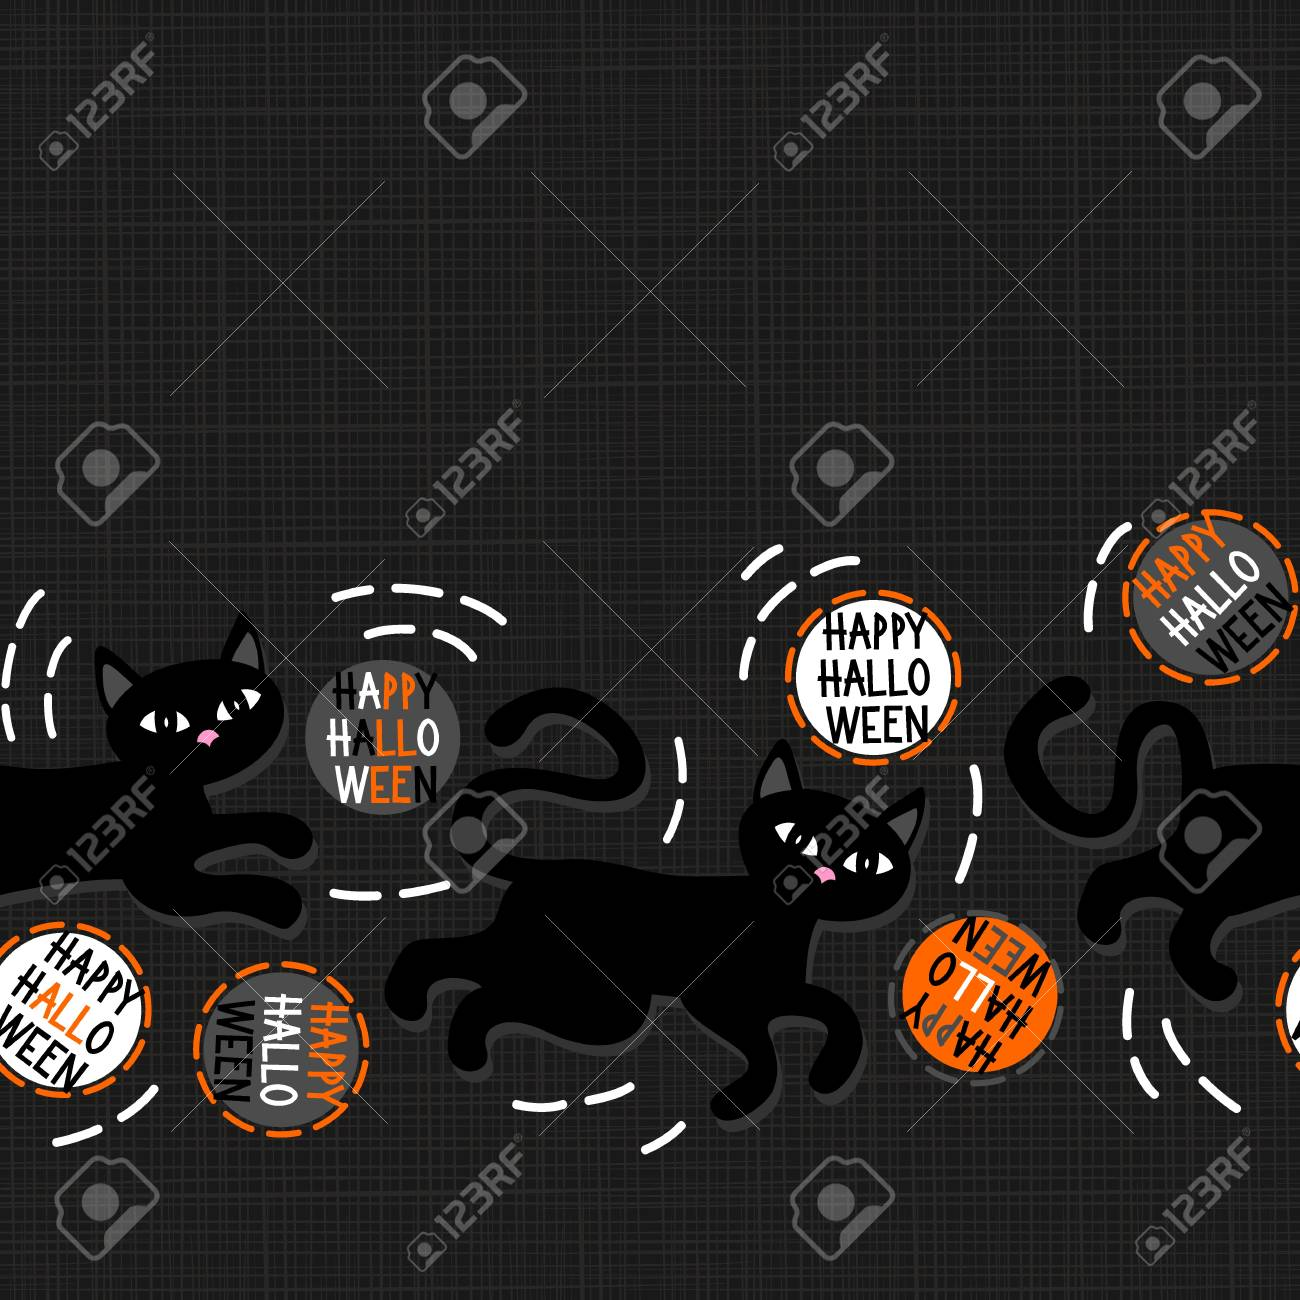 Black Cats With Halloween Wishes Holiday Seamless Horizontal Border On Dark  Background Stock Vector   31075931